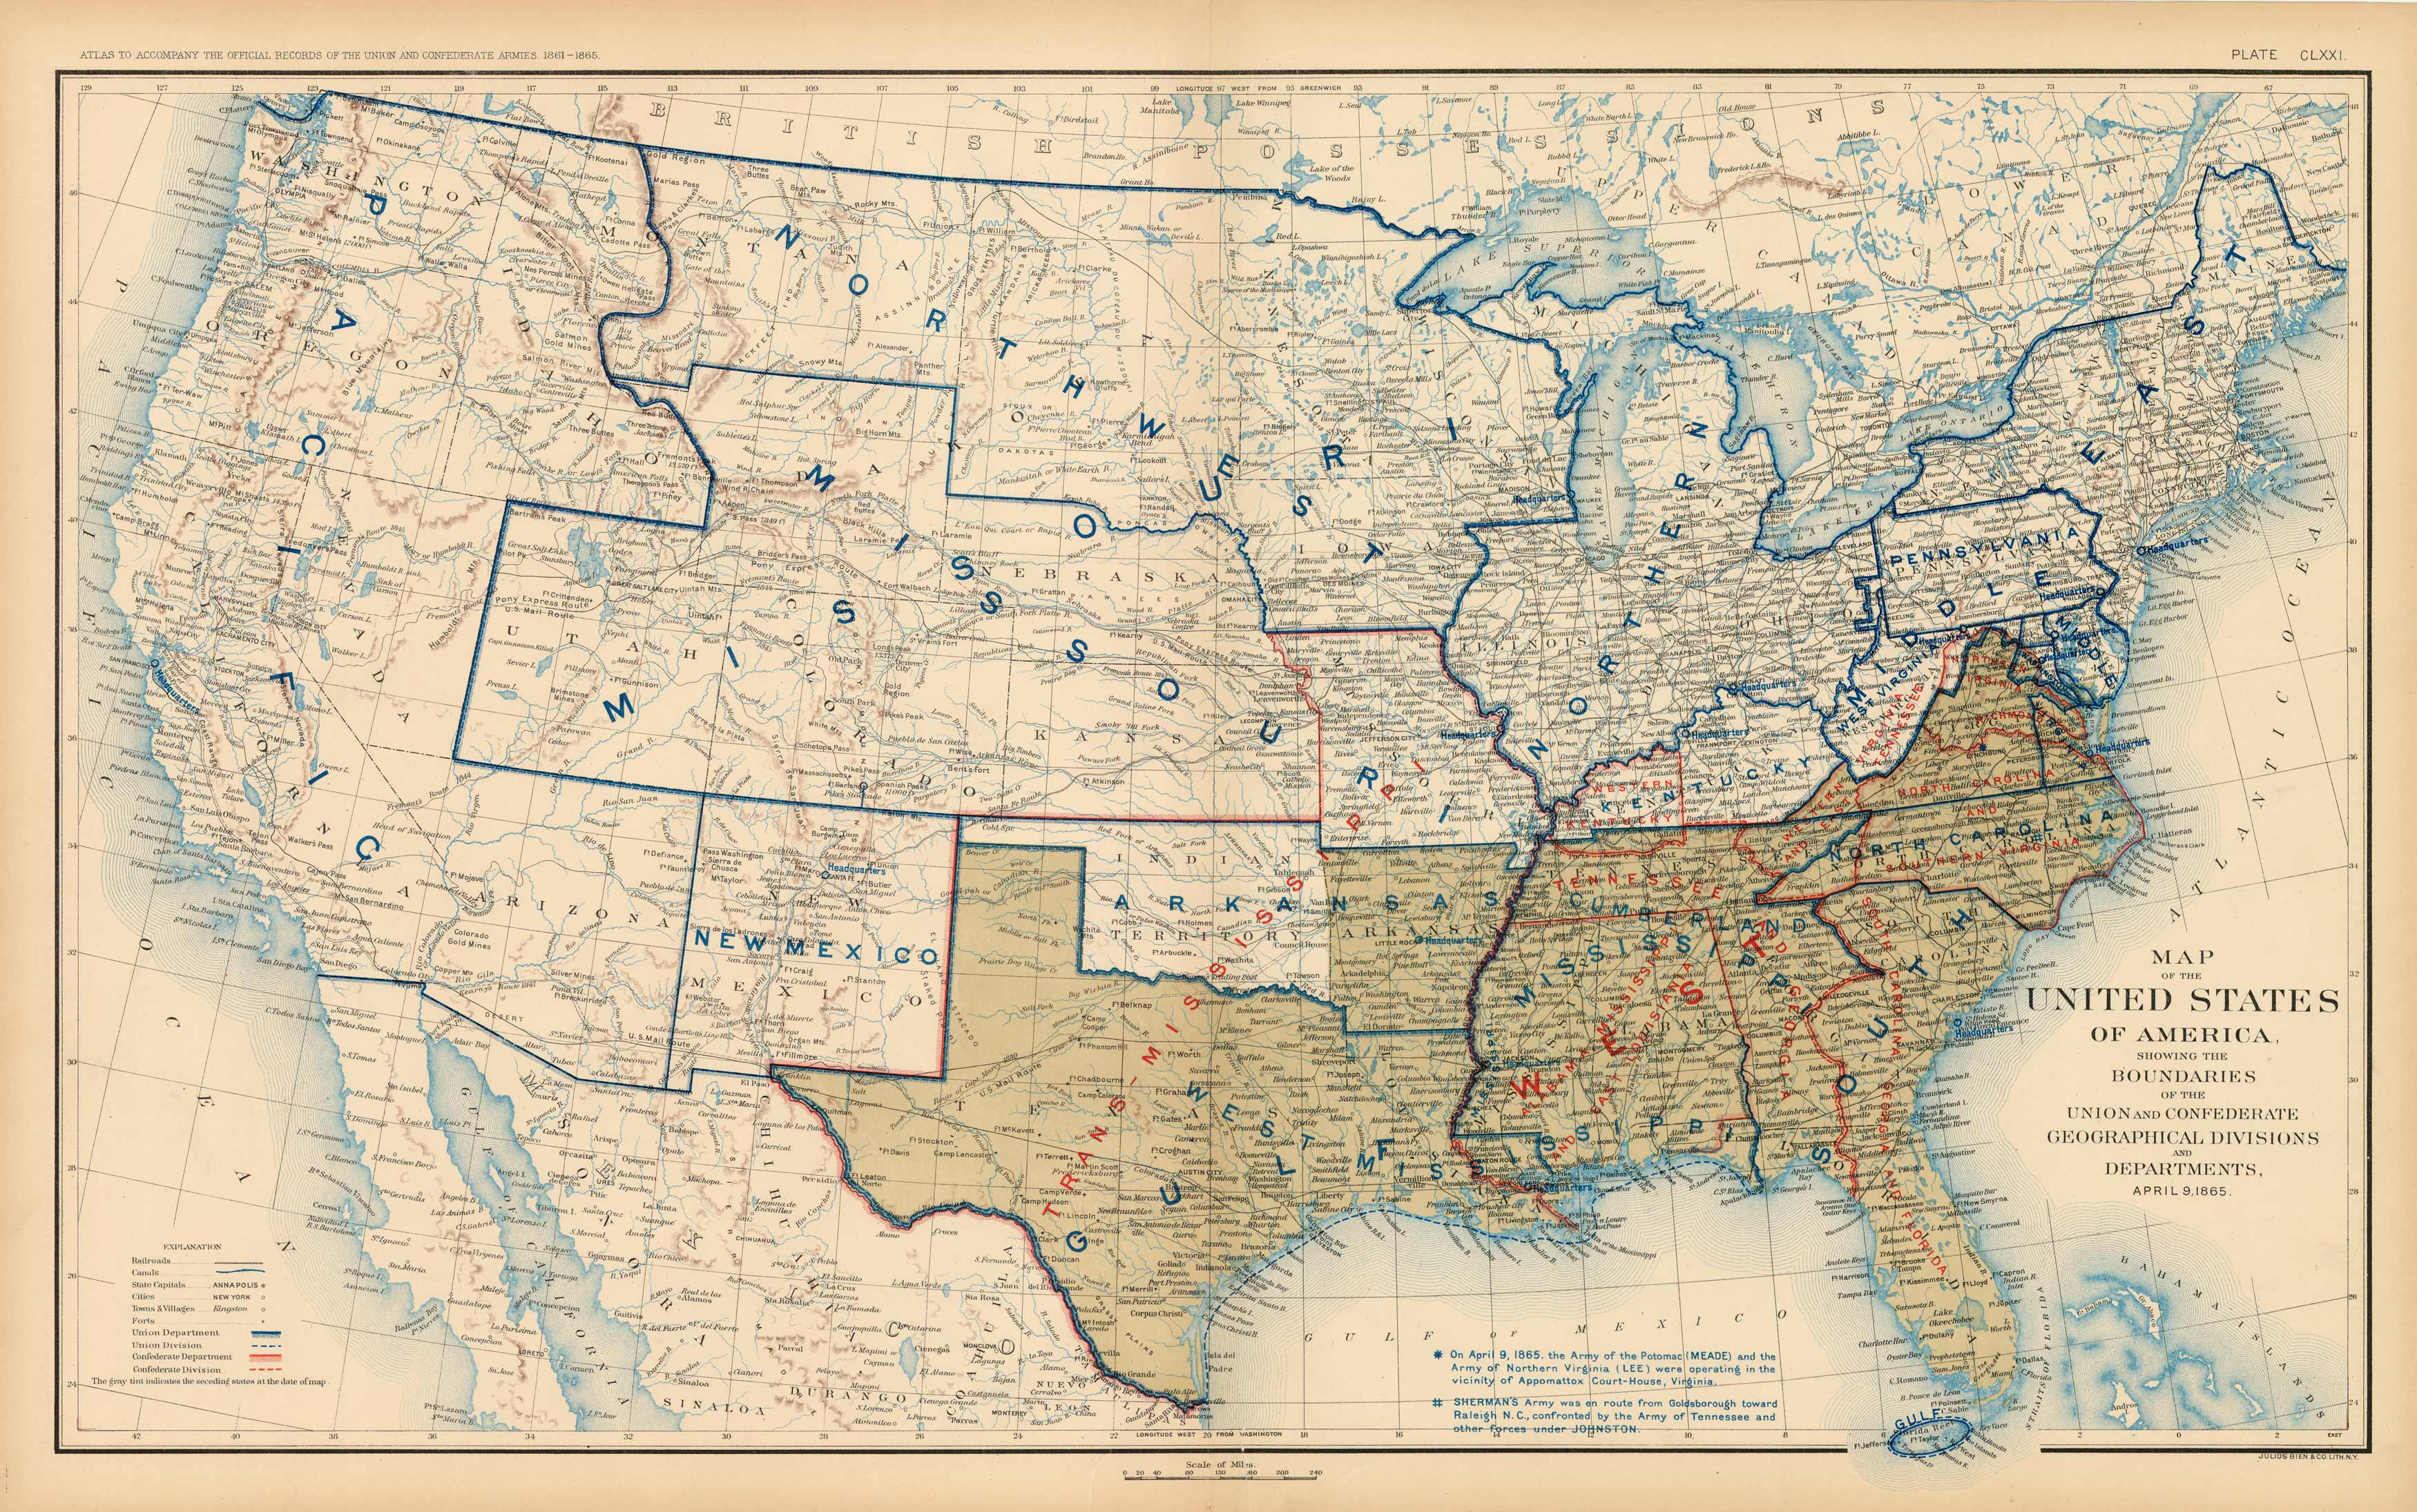 Civil War Atlas; Plate 171; Map of the United States of America Showing the  Boundaries of the Union and Confederate Geographical Divisions and ...